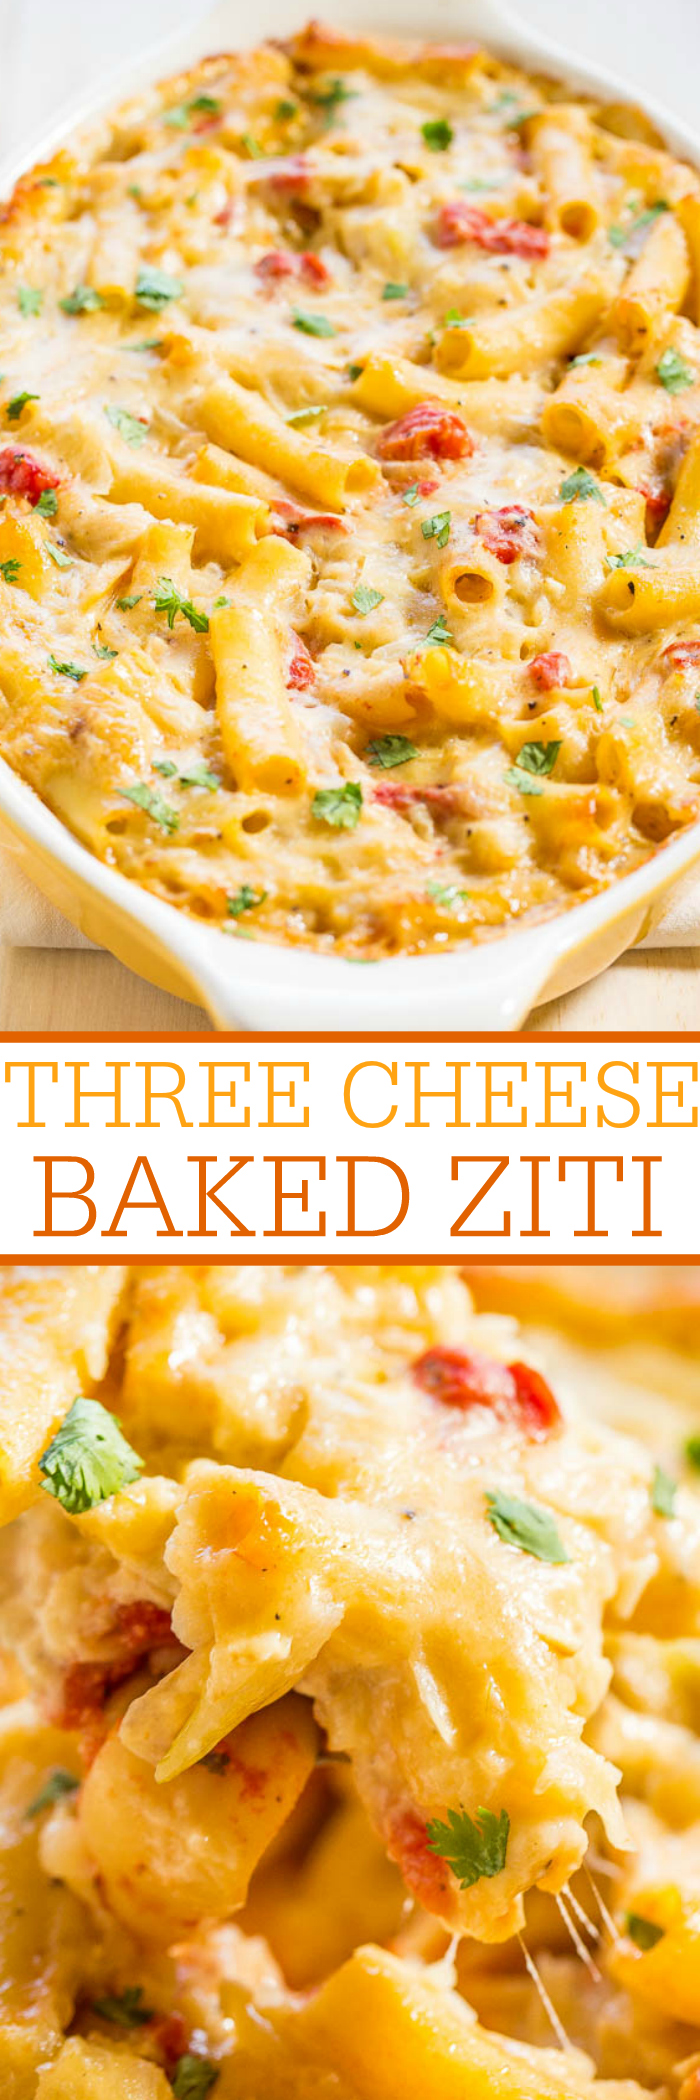 Baked Ziti with three cheeses: Mozzarella, Fontina and Parmesan melted together are divine! An easy meal to prepare that can also be frozen and is very tasty! The whole family will love it!